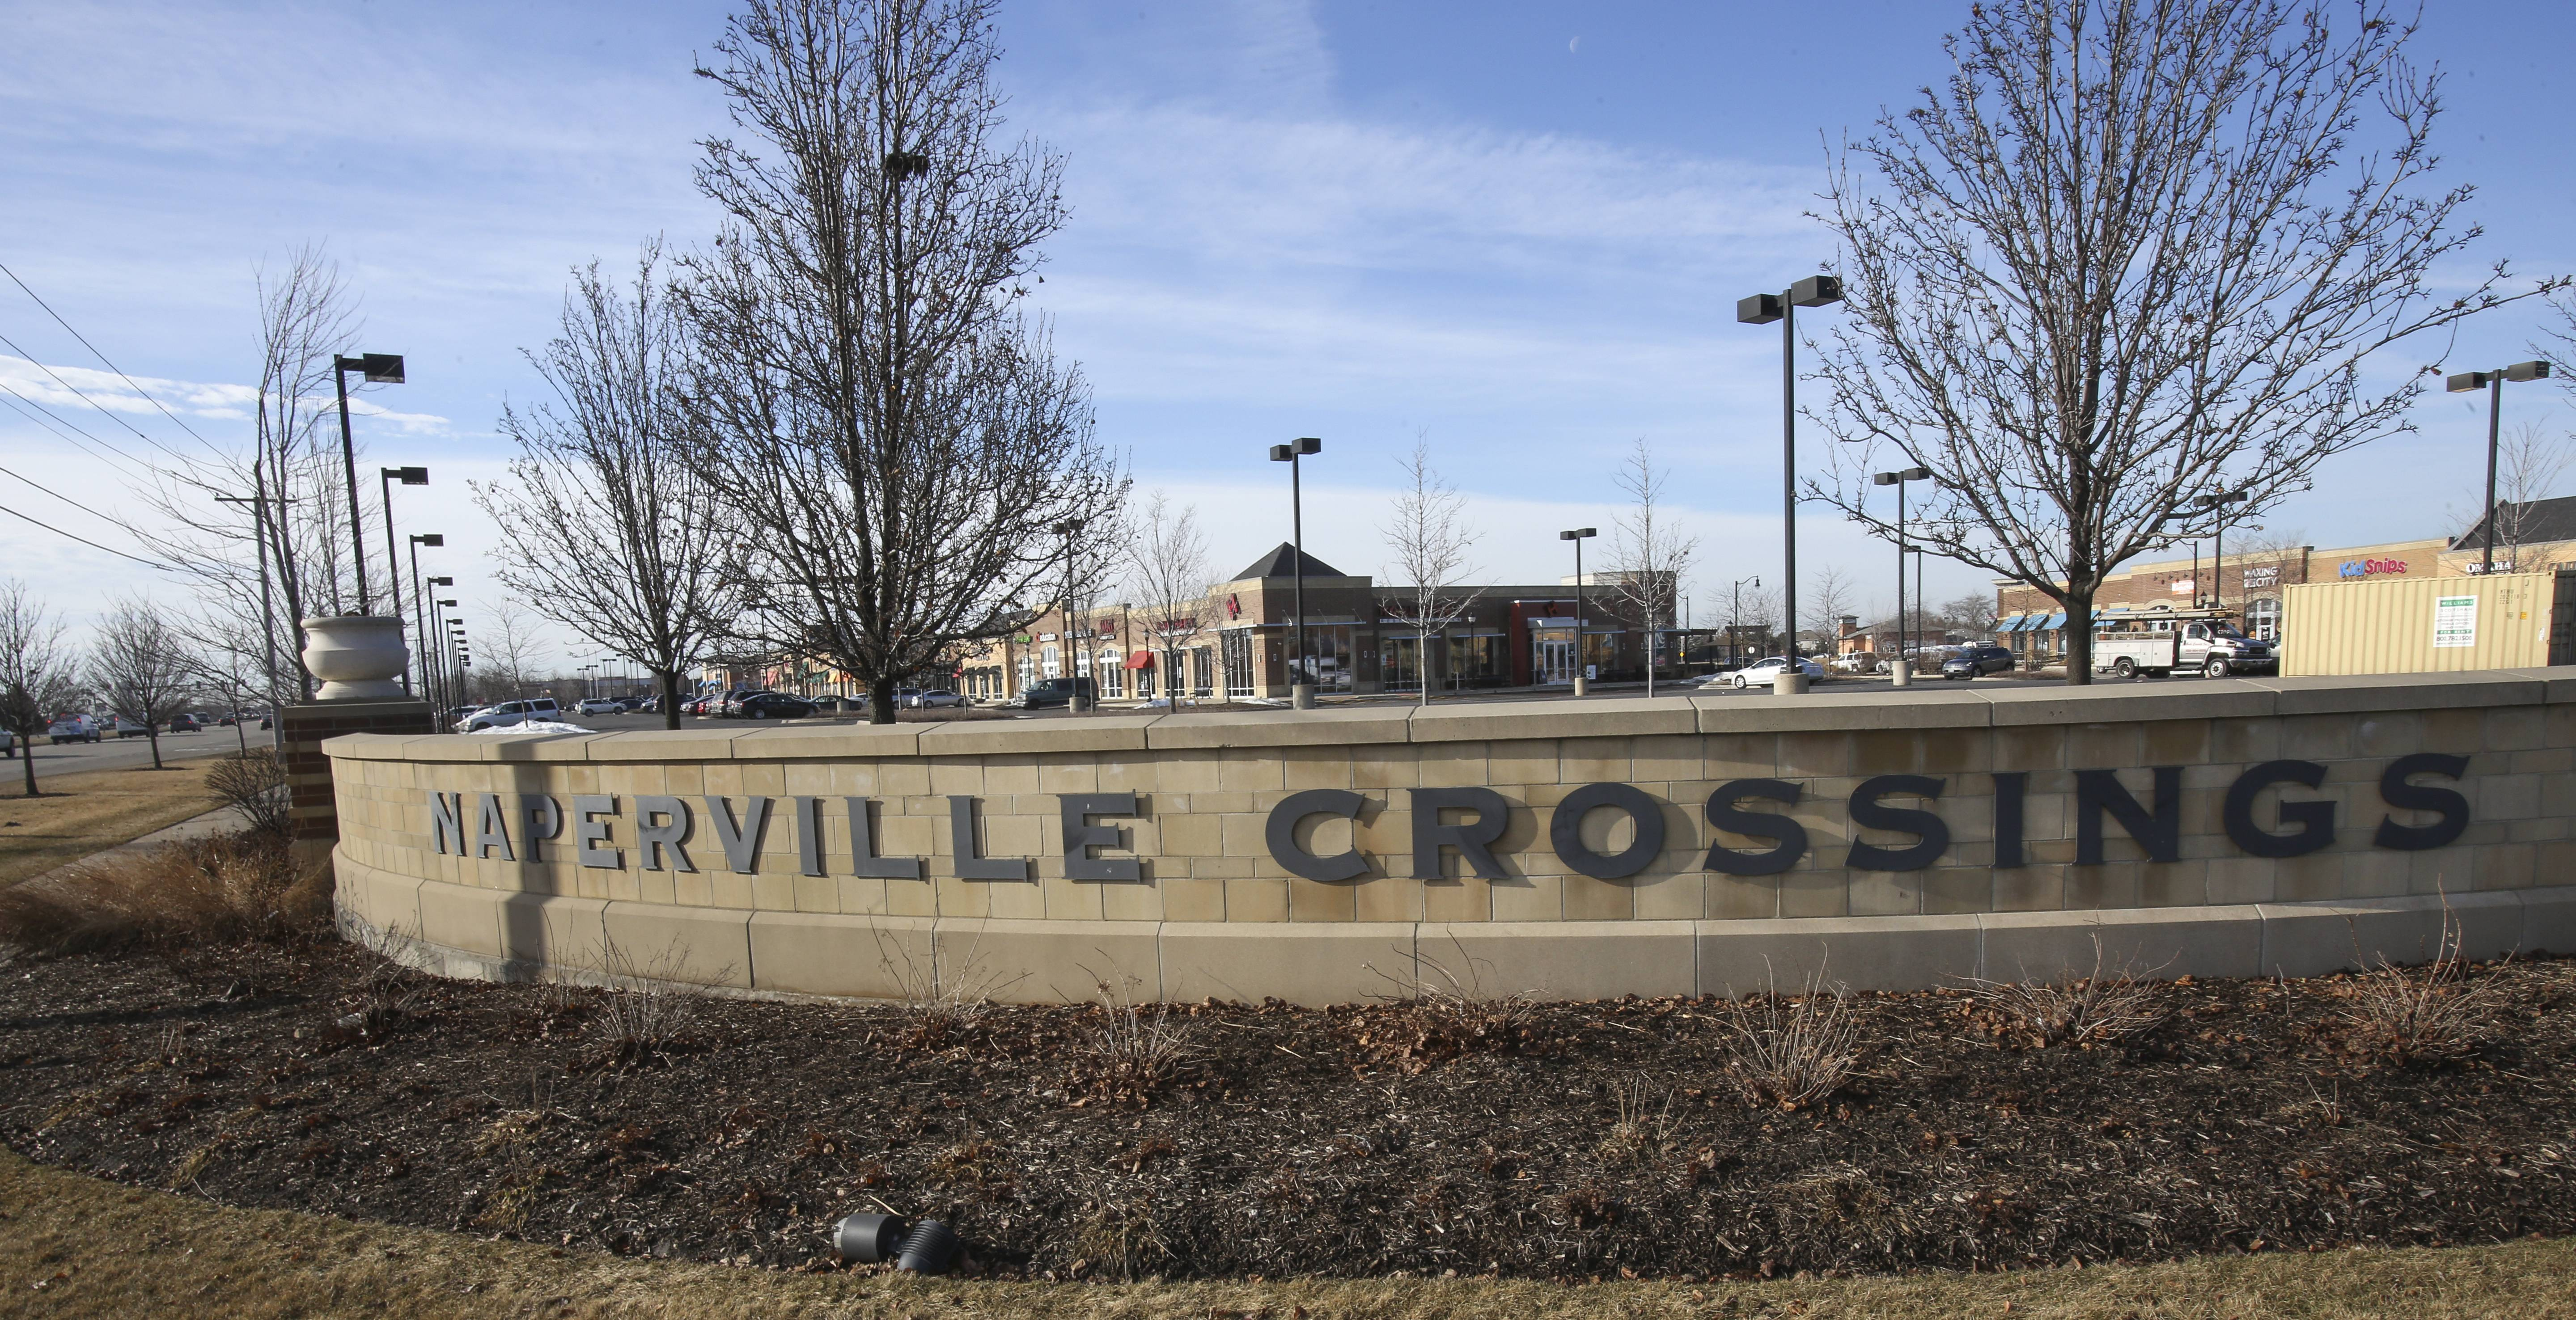 Naperville Mayor Steve Chirico says Aldi has leased an empty space at the Naperville Crossings development at Route 59 and 95th Street that was built for another grocer, The Fresh Market, but never occupied.